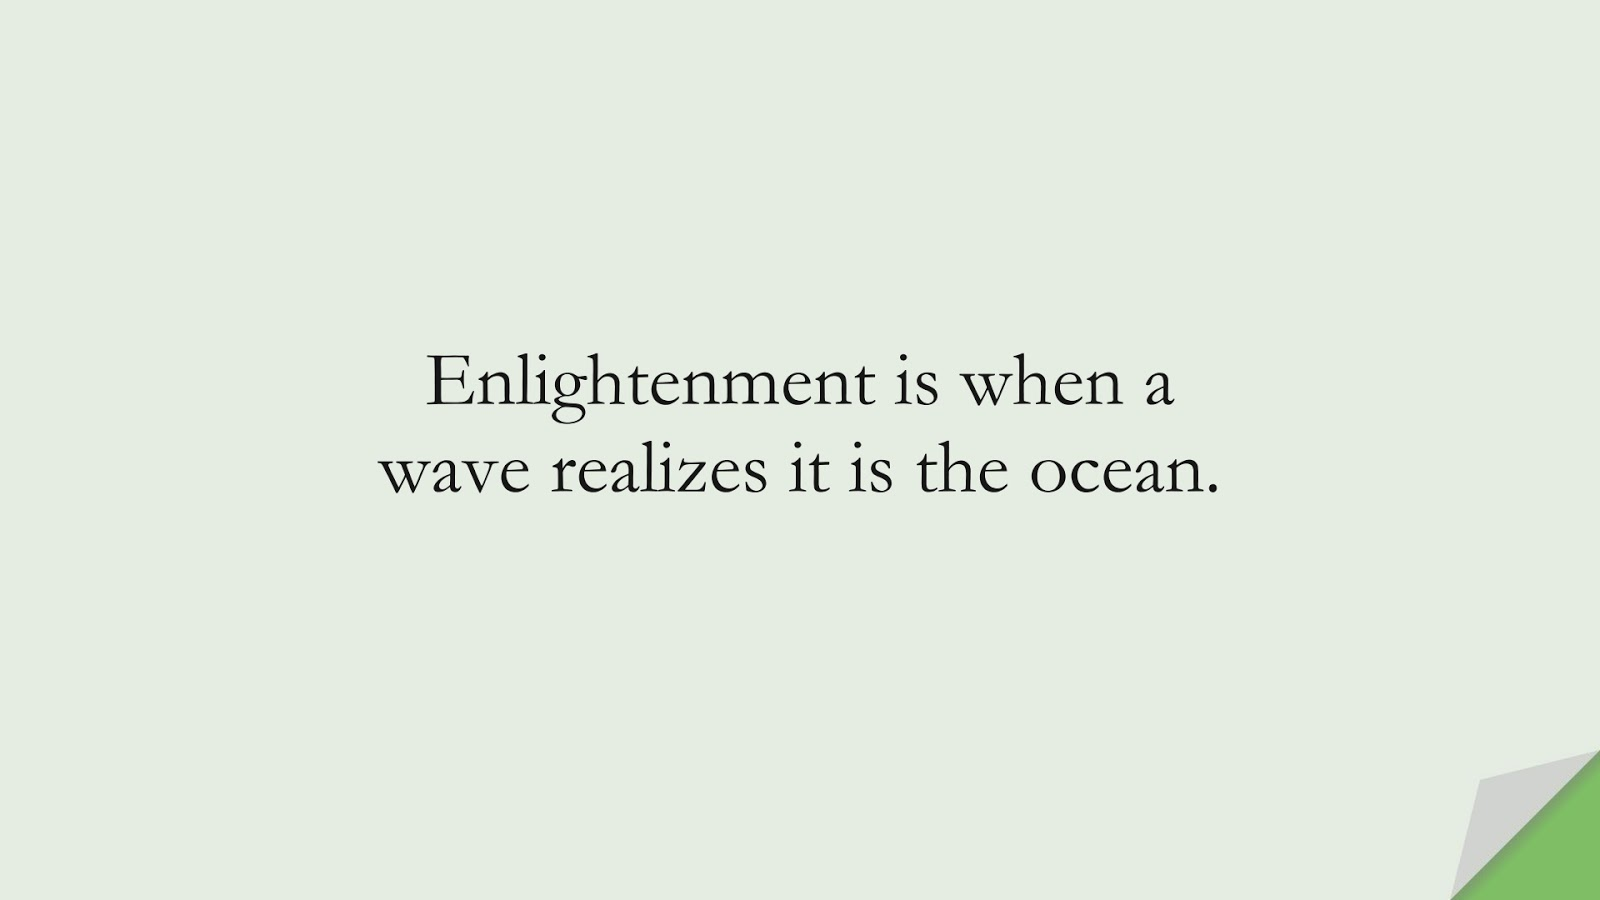 Enlightenment is when a wave realizes it is the ocean.FALSE